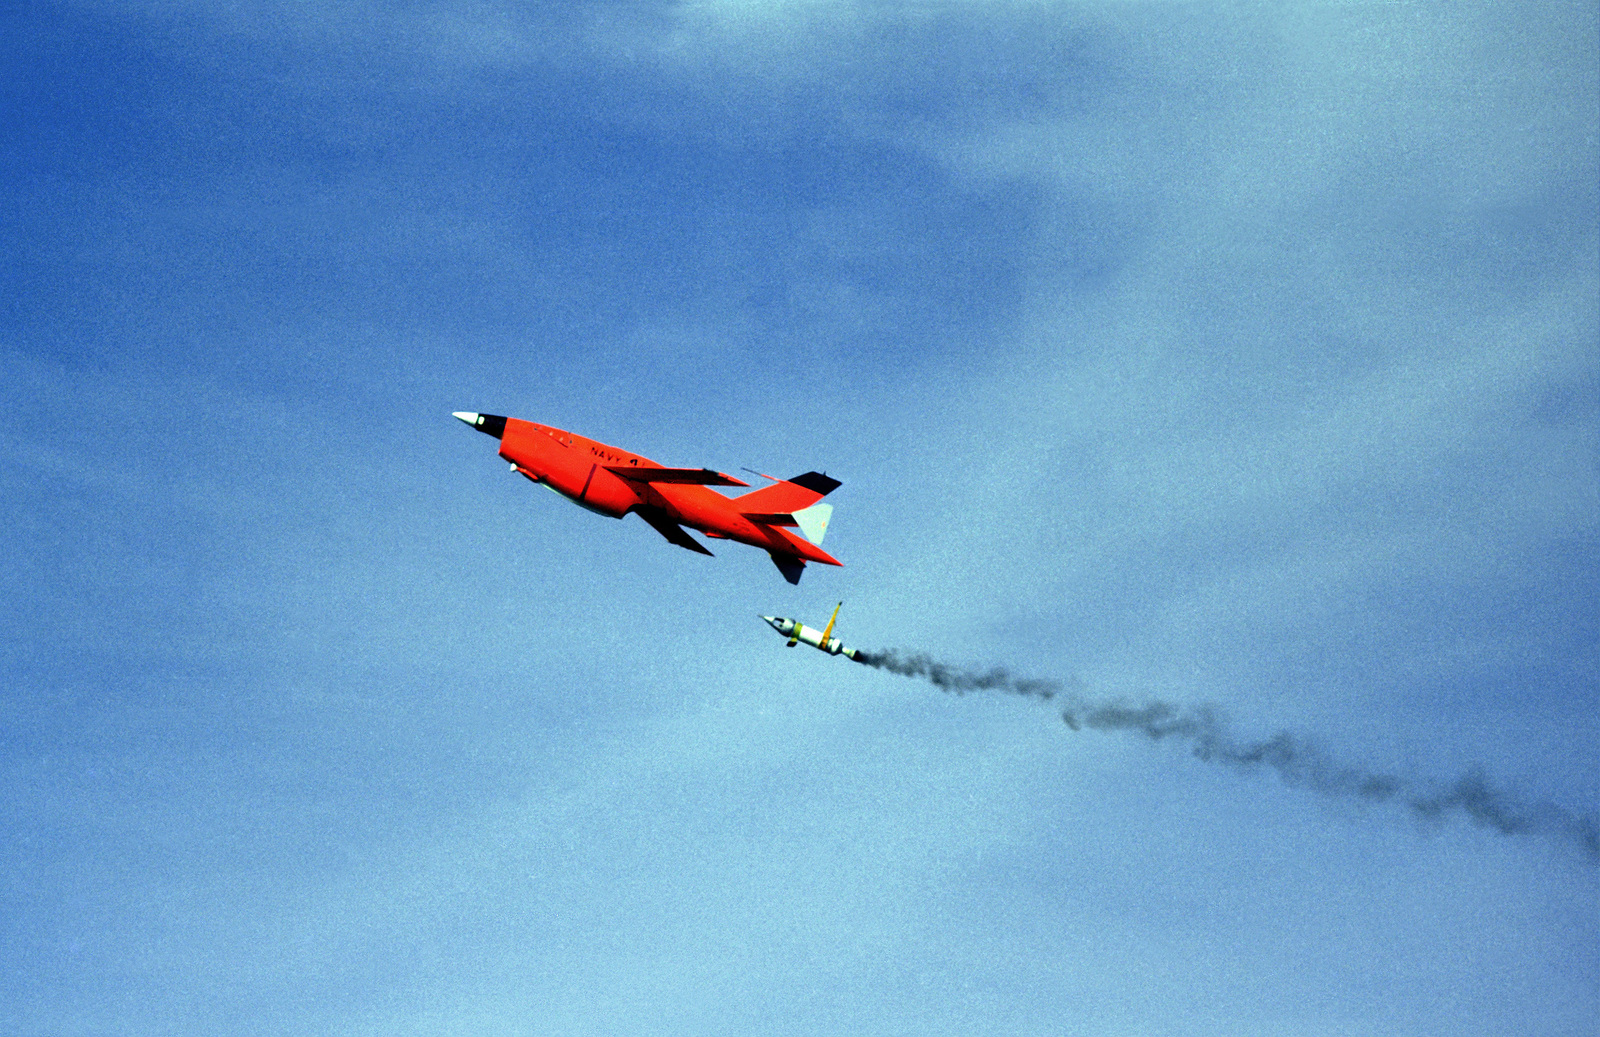 A ground-to-air left side view of a BQM-34S Firebee I remotely-piloted target vehicle moments after lift-off from launch pad #55 at the Pacific Missile Test Center. The jet-assisted take-off bottle (JATO) has just separated from the rear of the drone